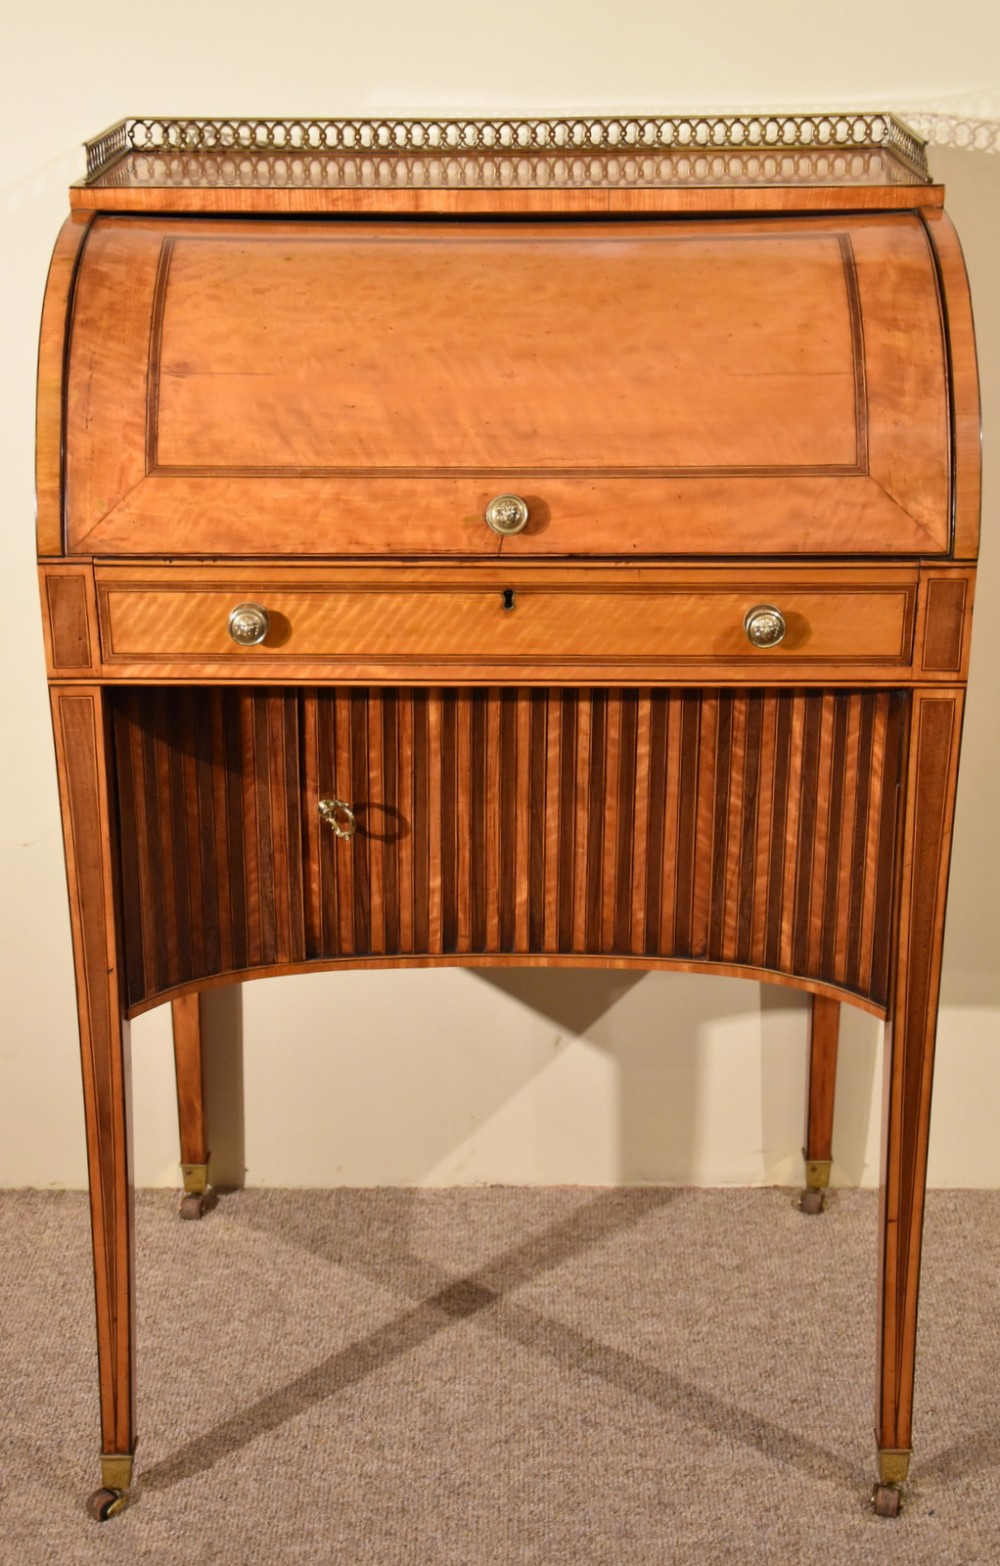 a fine quality late 18th century satinwood roll top writing desk